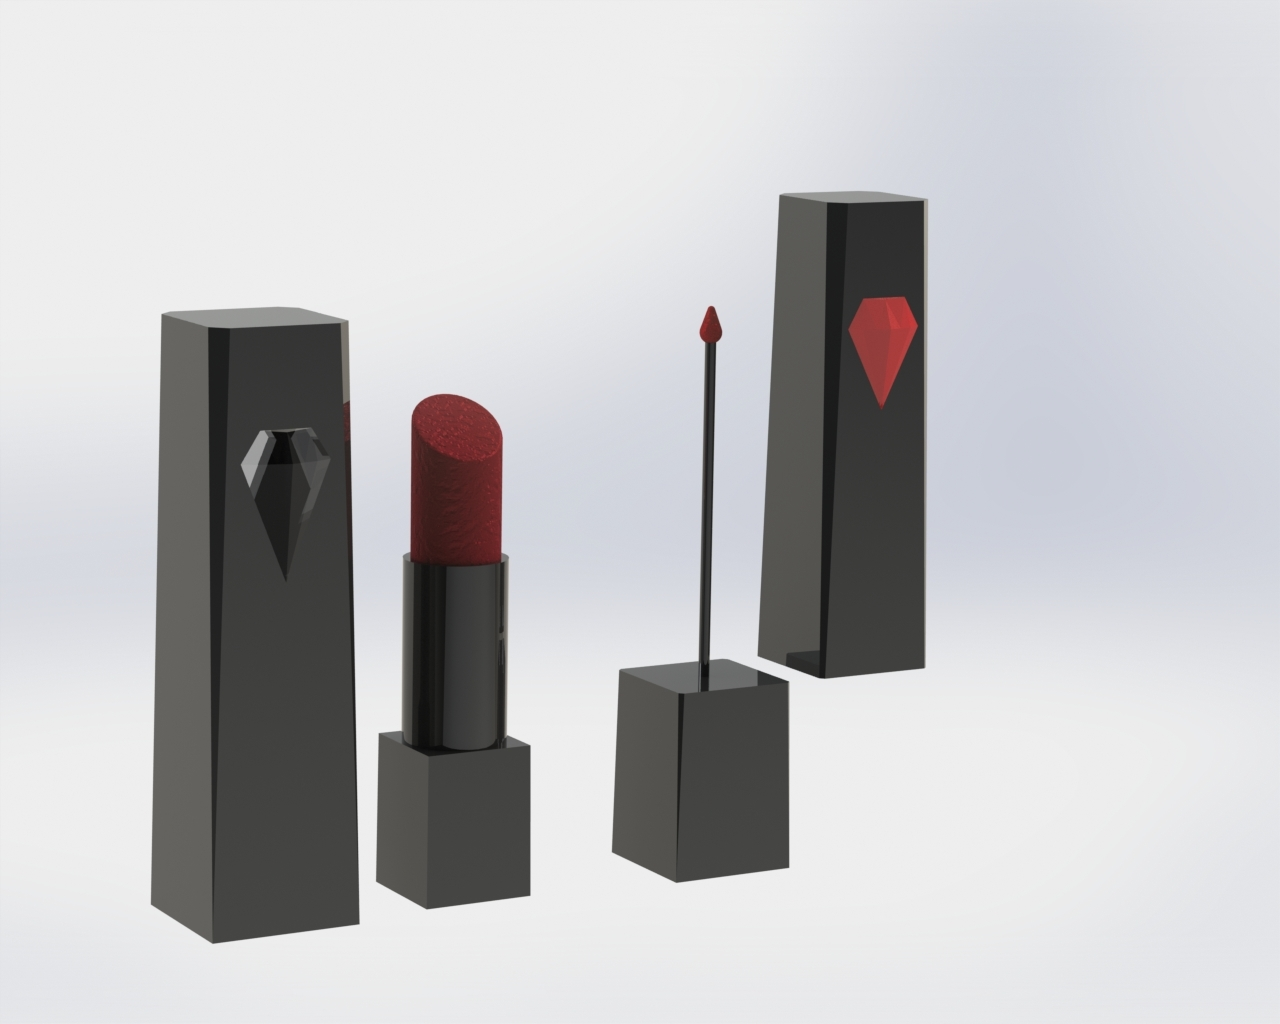 Prototype of Lipstick & Eye Liner Product